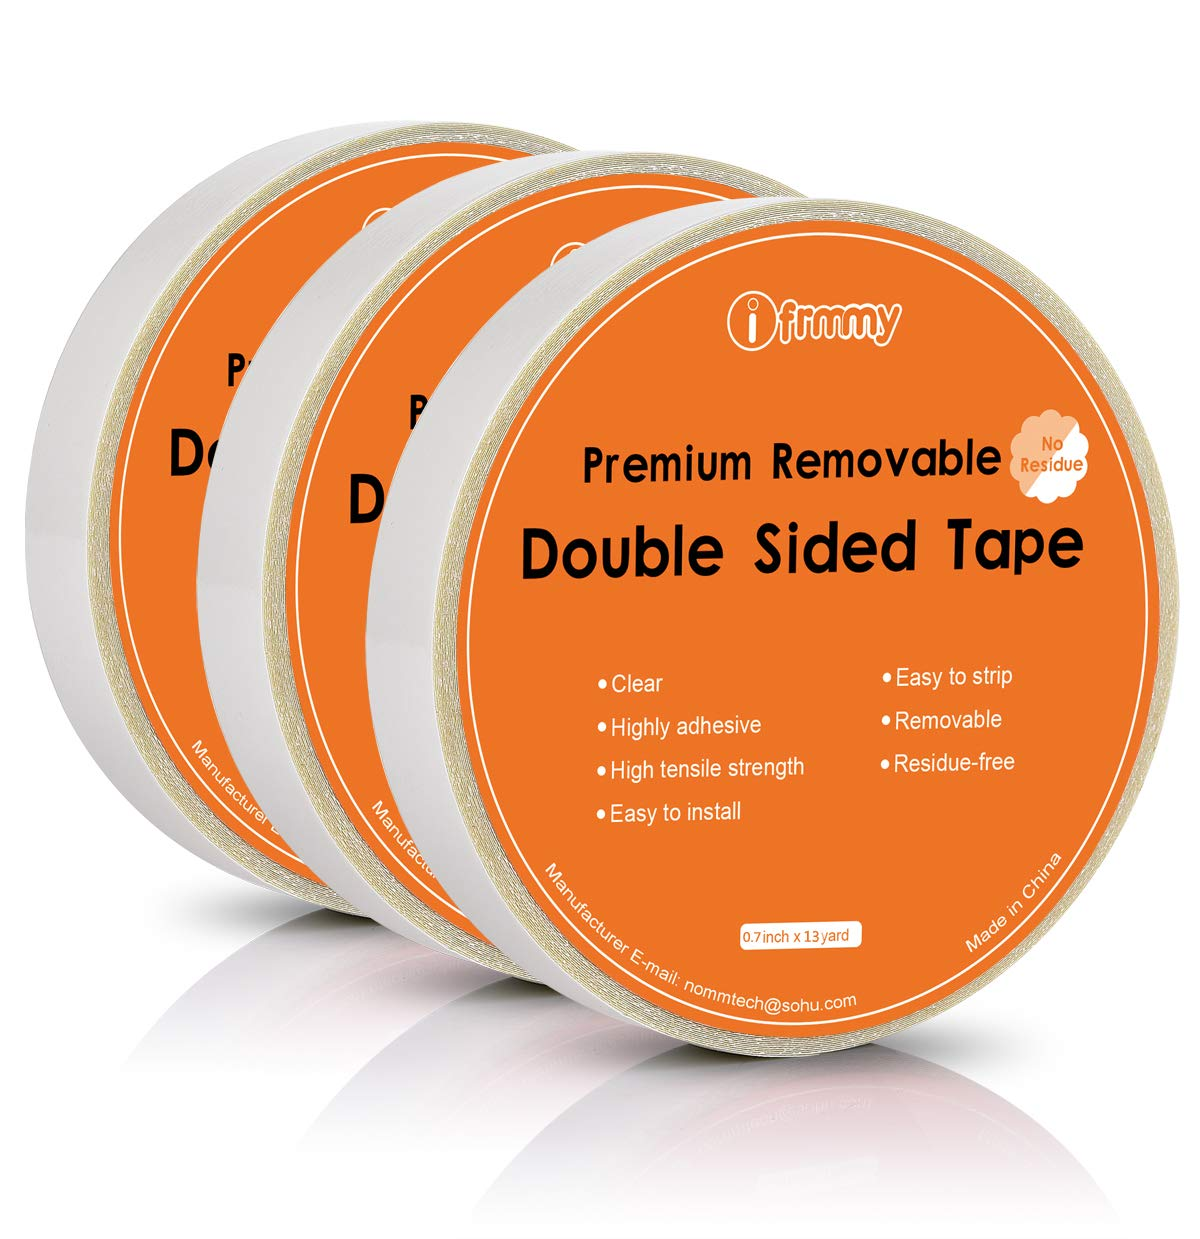 Amazon com ifrmmy removable clear double sided sticky tape no residue 0 7 inches x 13 yards 3 rolls office products